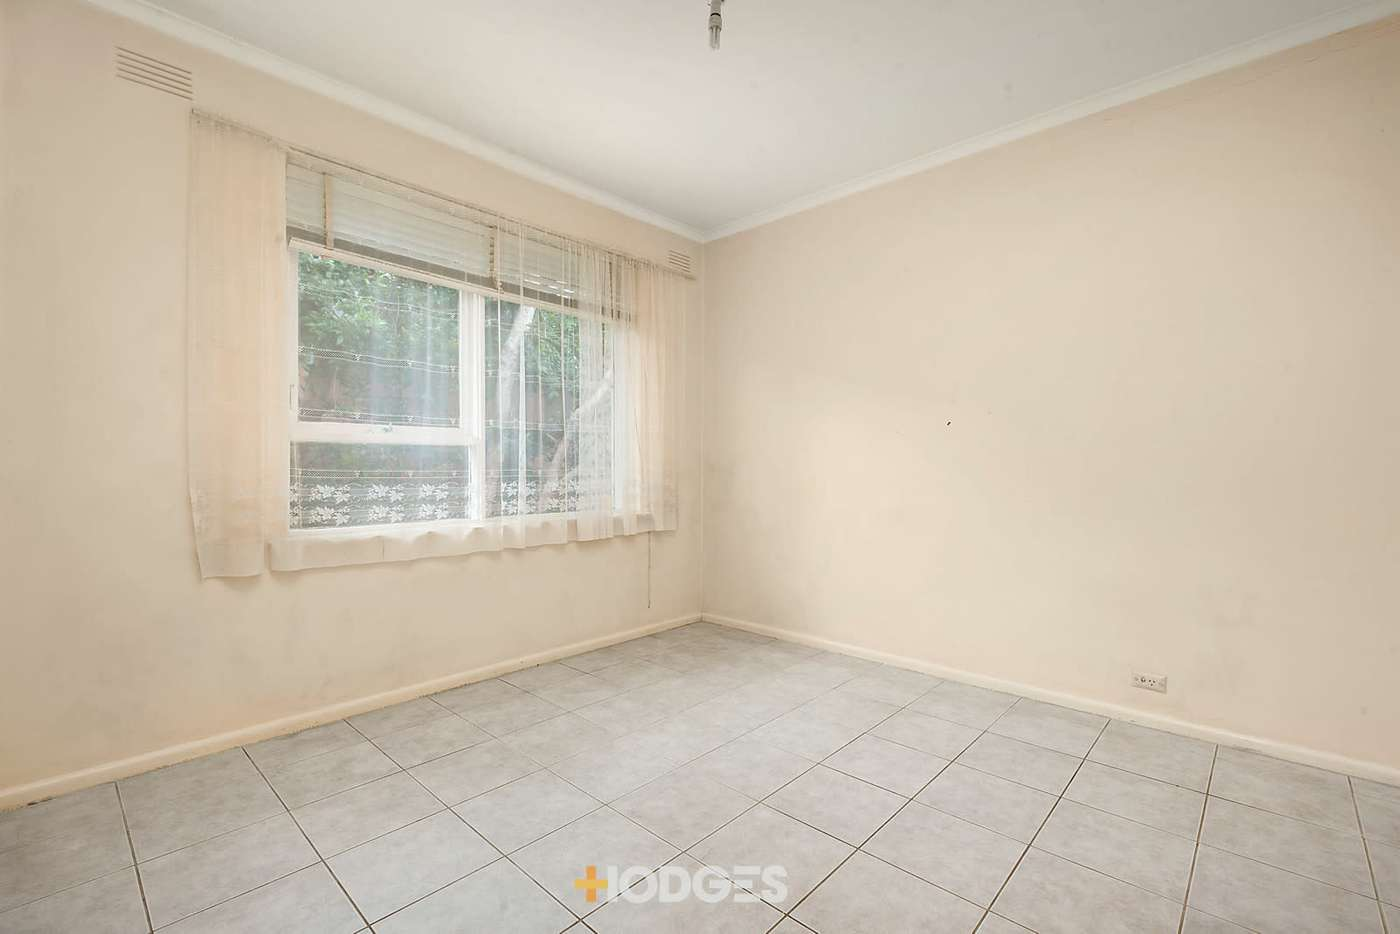 Fifth view of Homely apartment listing, 7/13 Waratah Avenue, Glen Huntly VIC 3163